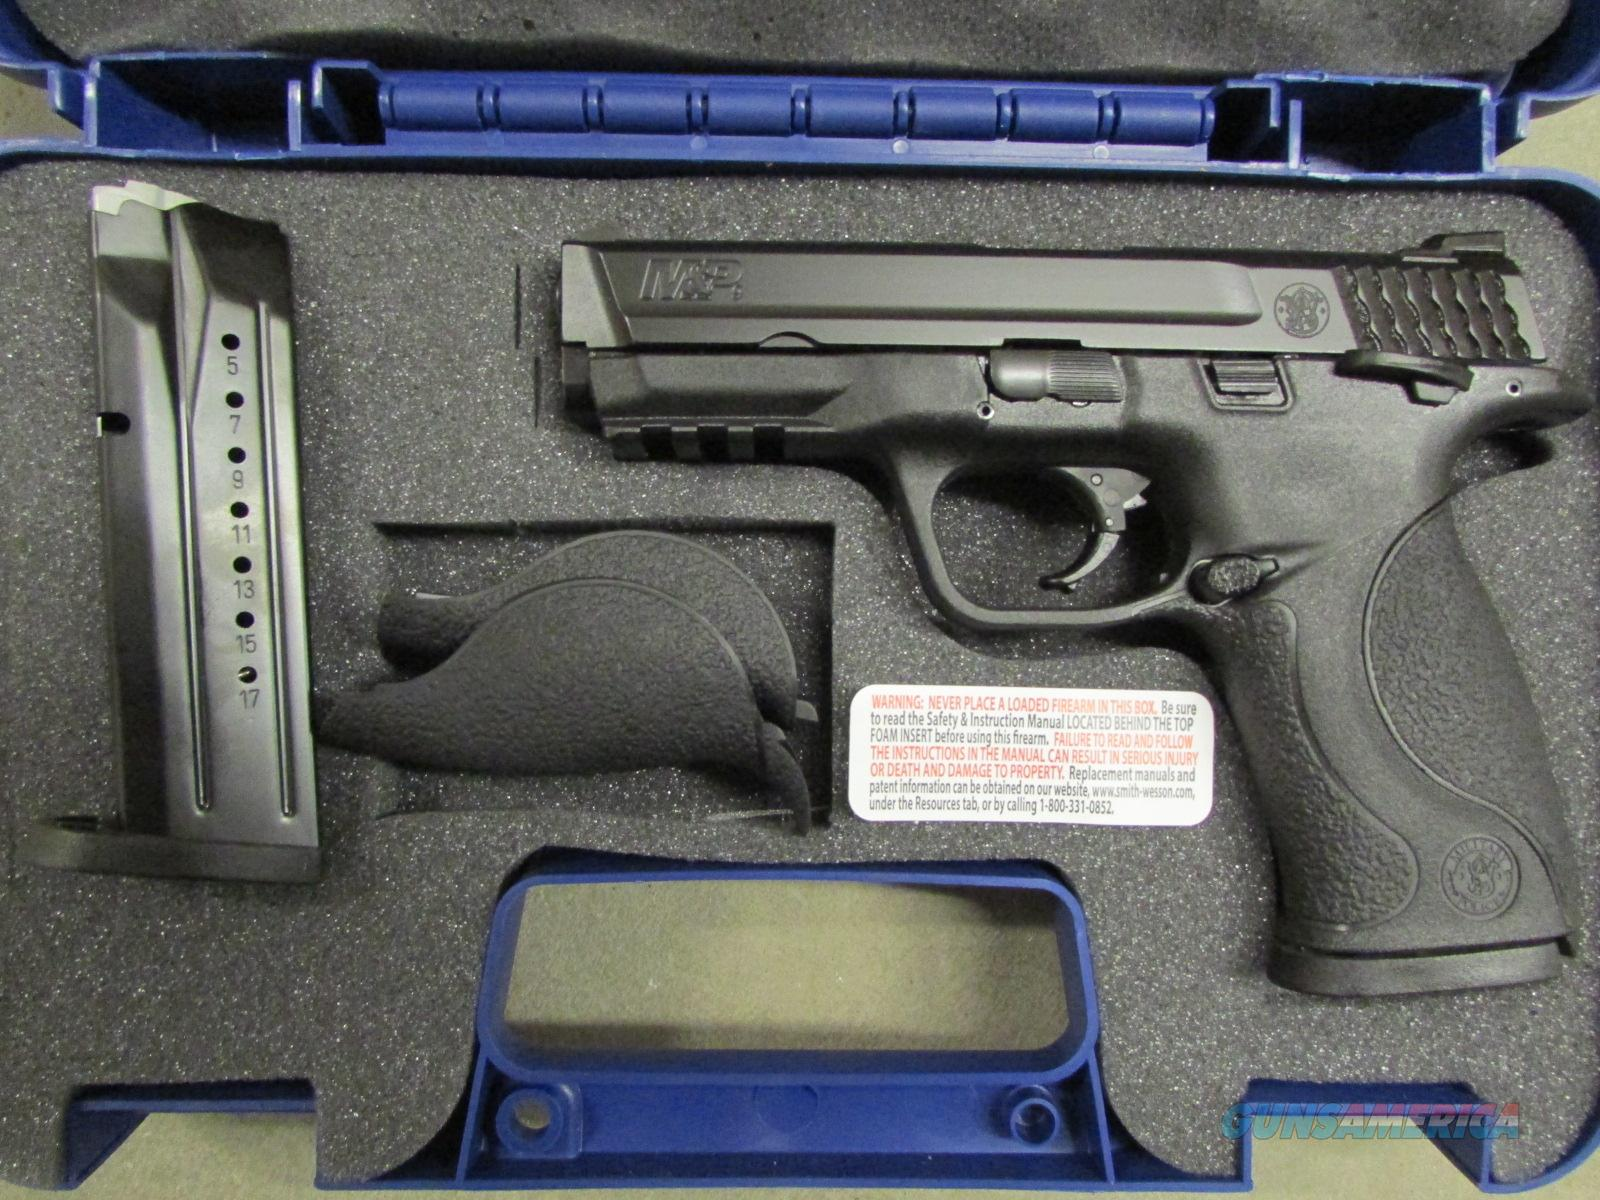 Smith & Wesson M&P9 with Thumb Safety 9mm  Guns > Pistols > Smith & Wesson Pistols - Autos > Polymer Frame